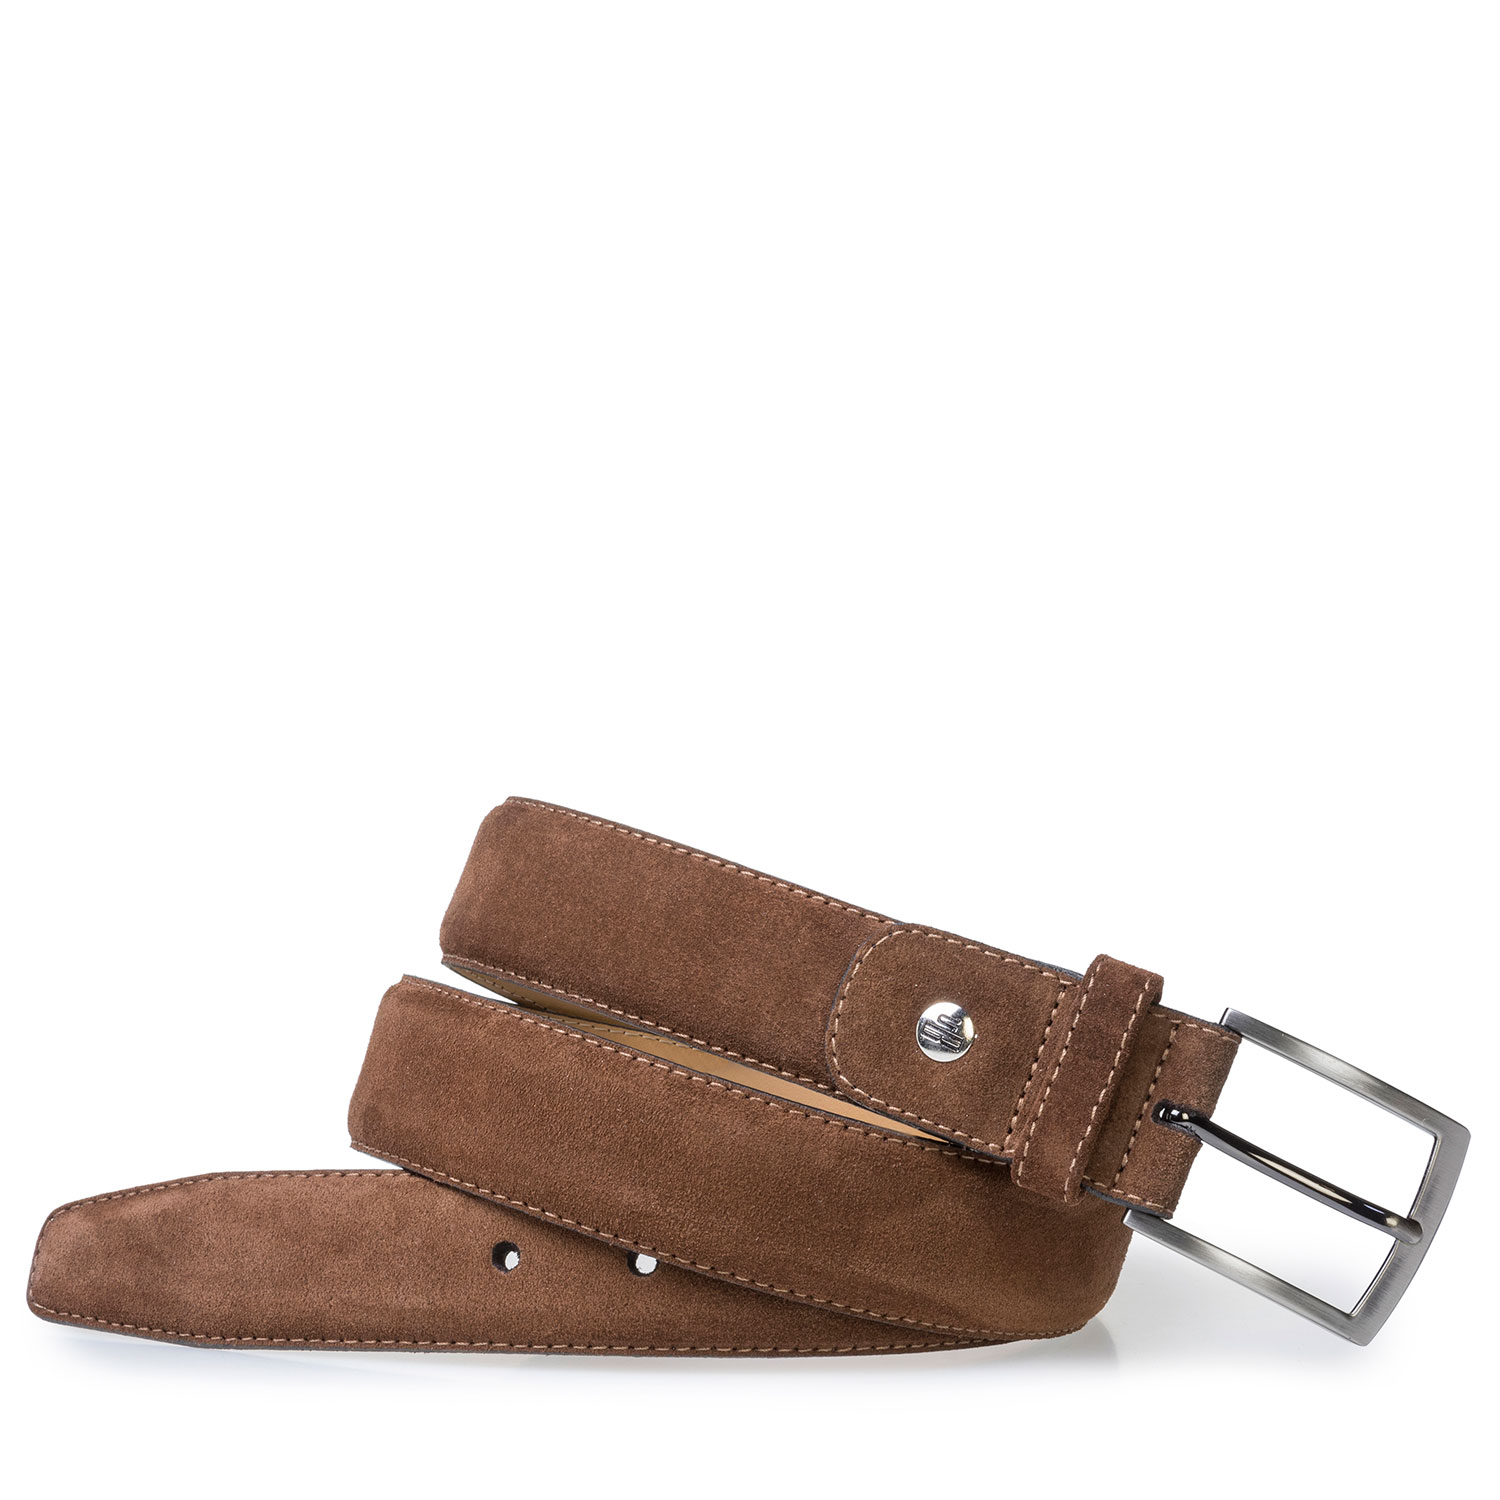 75076/36 - Belt suede leather brown